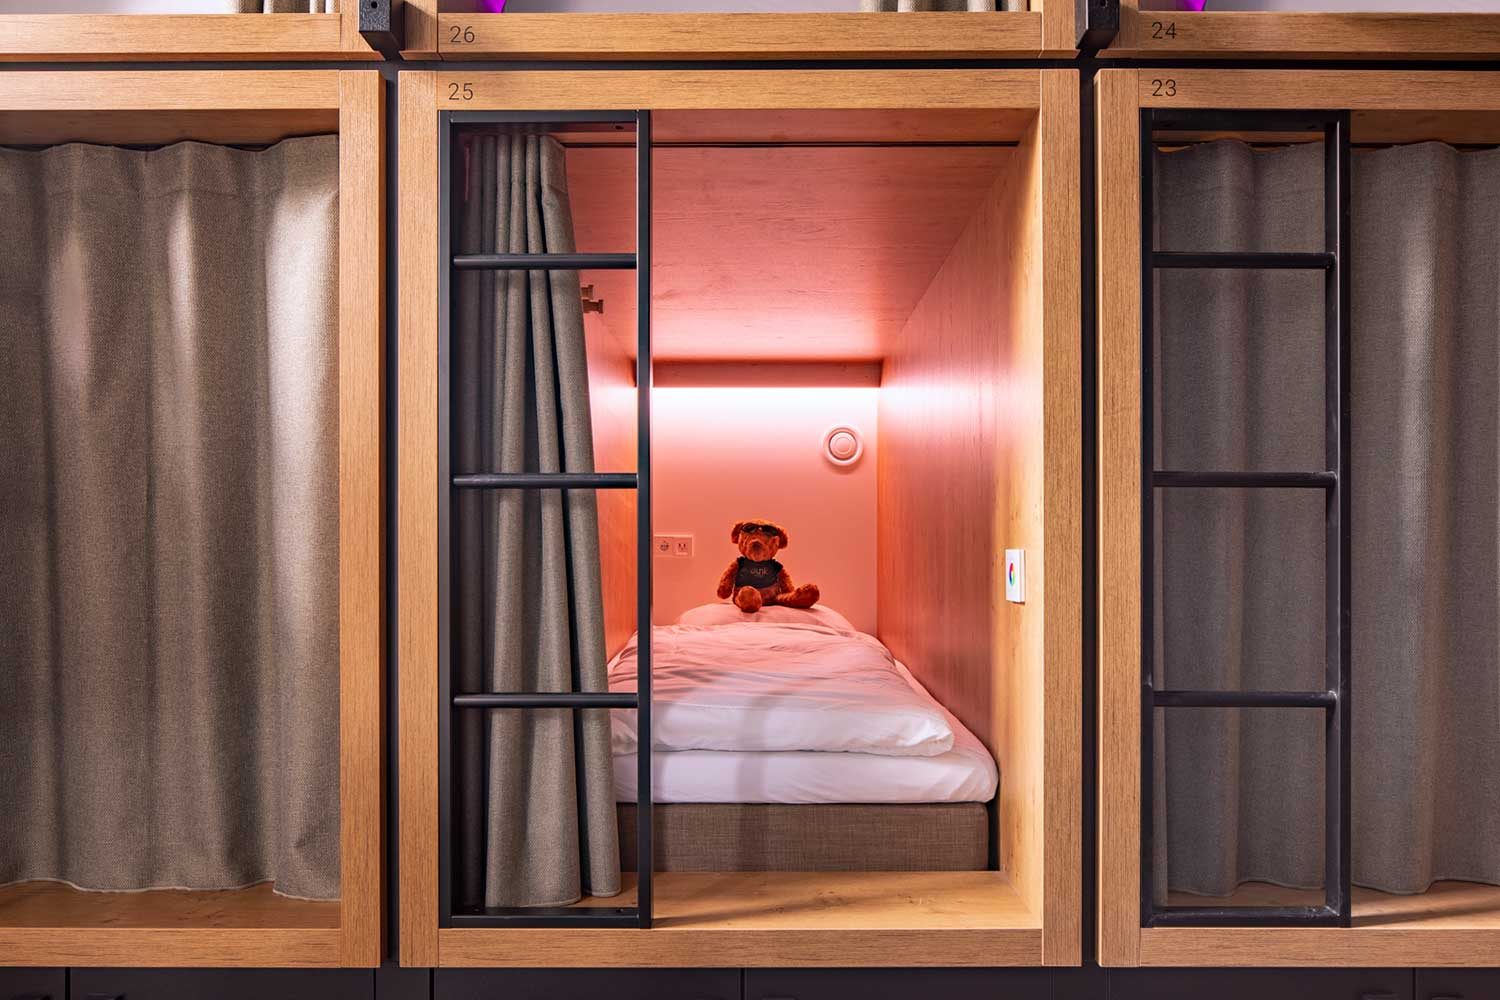 BUNK Hotel offers festival discount + welcome drink for LGW19 visitors